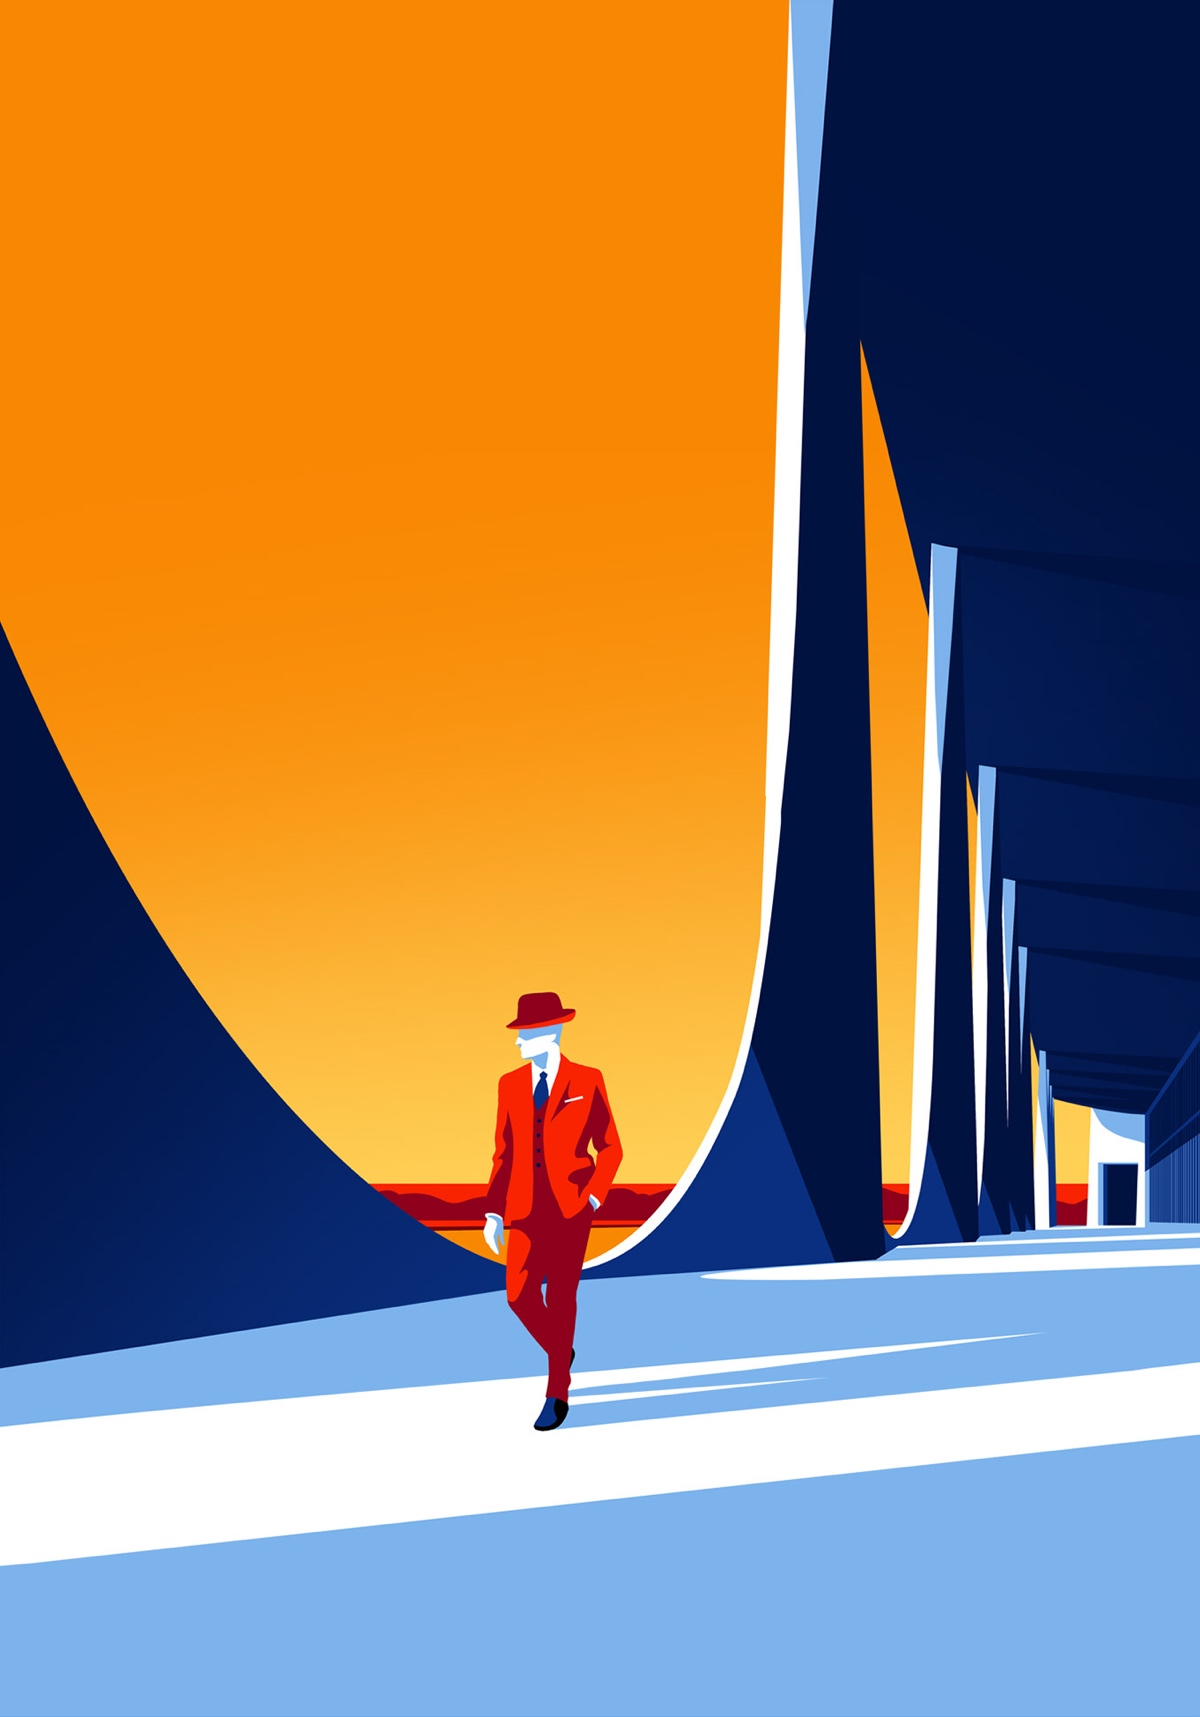 Minimal Illustrations of Oscar Niemeyer Architecture